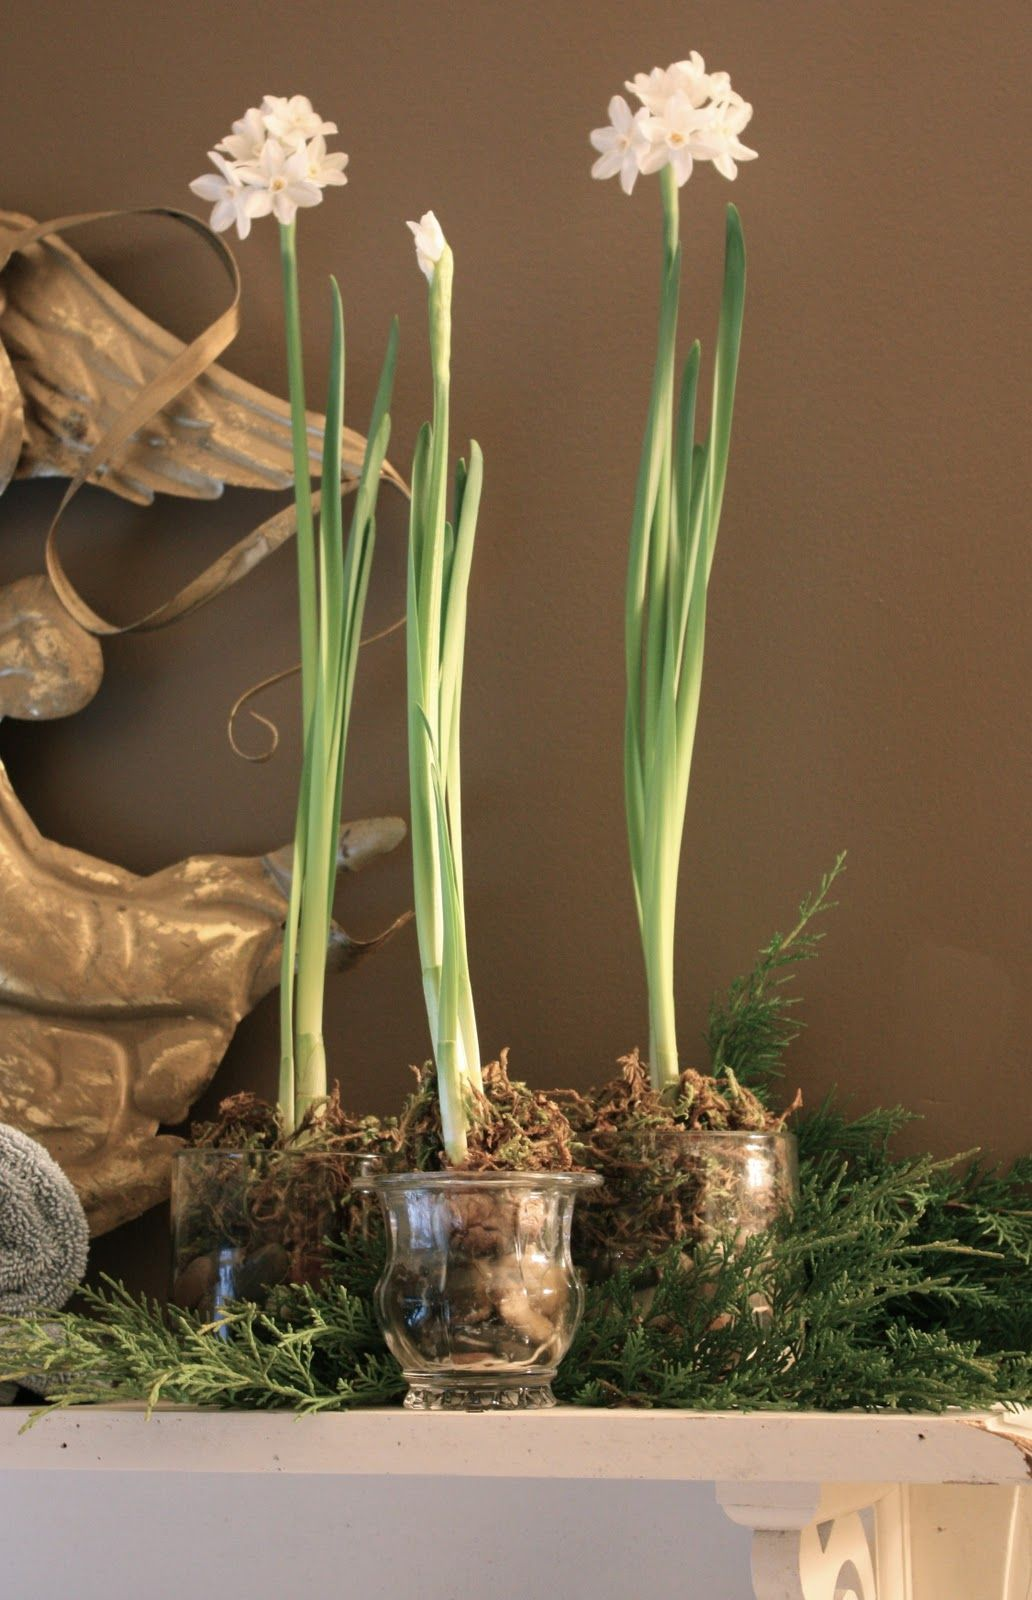 So Easy Saw Paperwhite Bulbs At Walmart For 4 97 For 4 Might Start To Next Week For Christmas Day Blooms Can Do Christmas Home Paperwhites Bulb Flowers